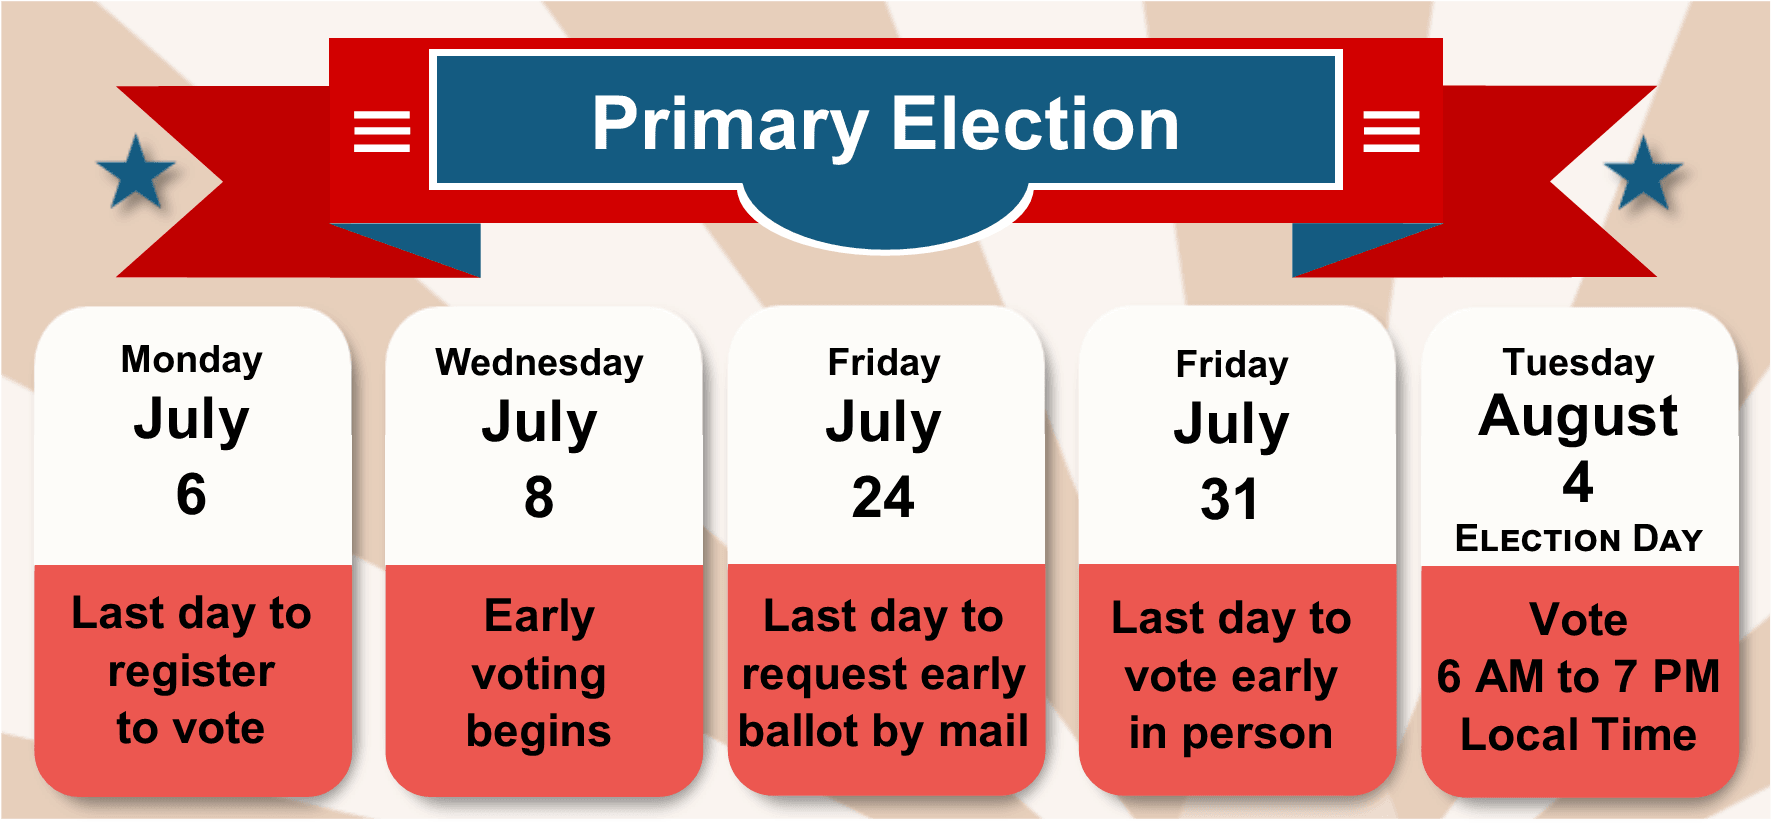 A calendar of important dates leading up to the Primary Election